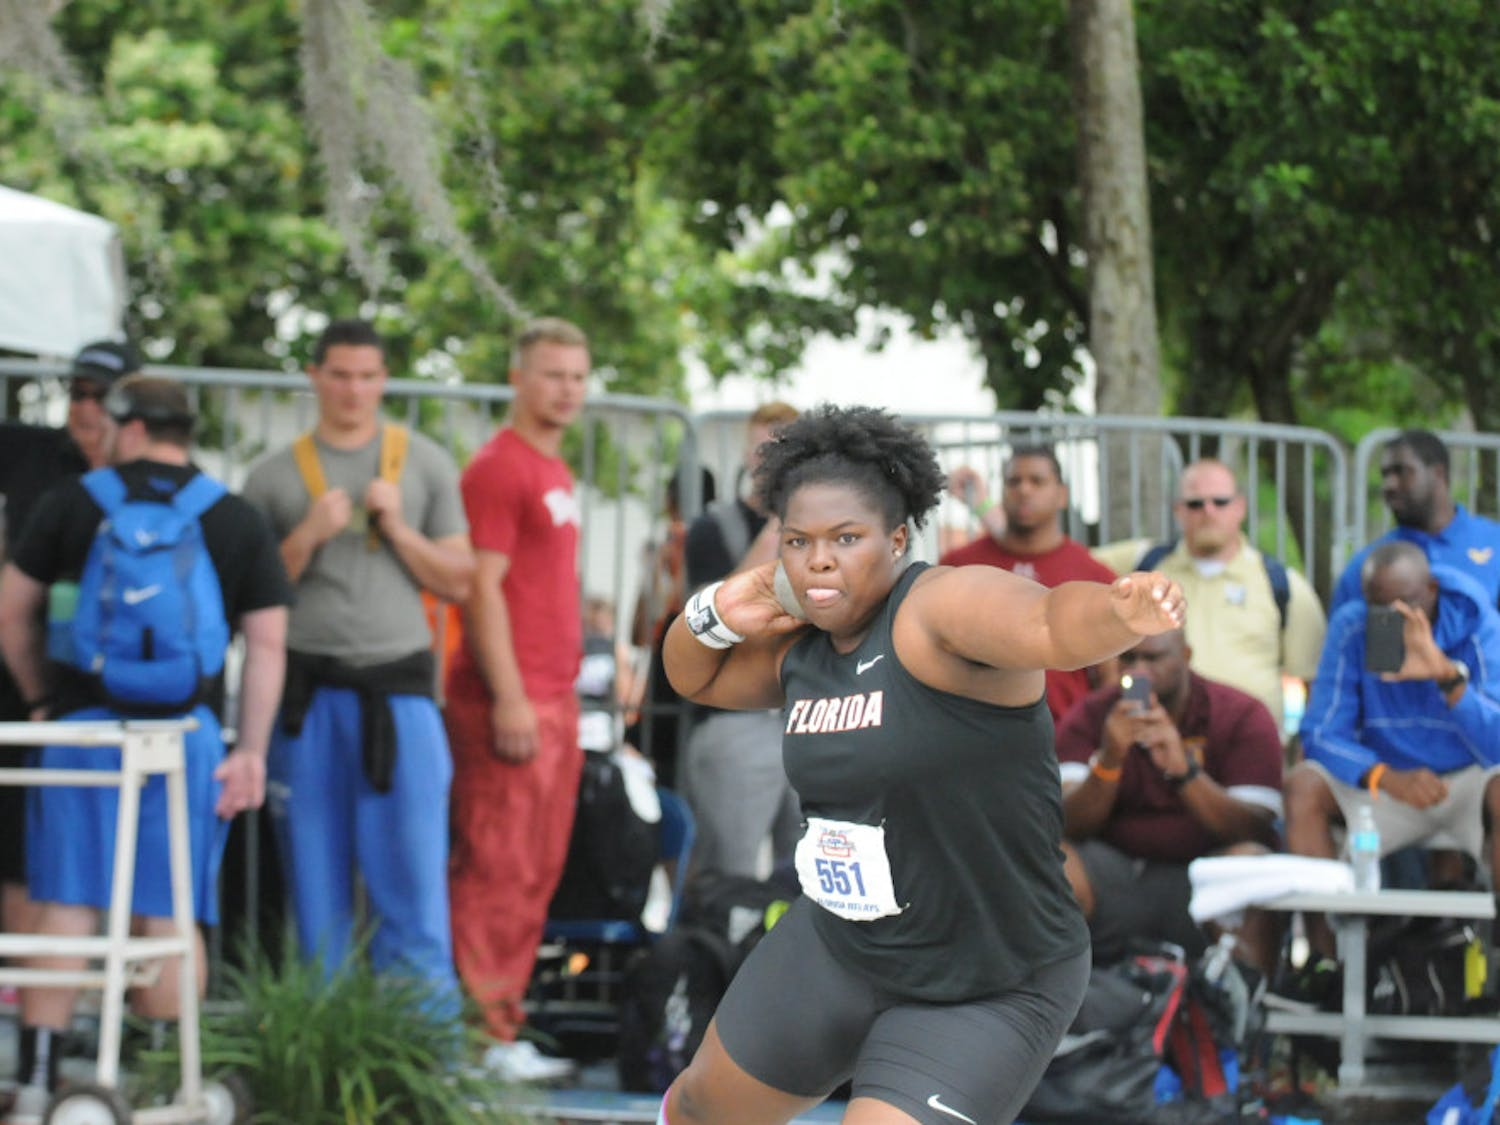 Senior thrower Lloydricia Cameron became the first Gator since 2004 to advance to the NCAA Outdoor Championships in both the shot put and discuss.